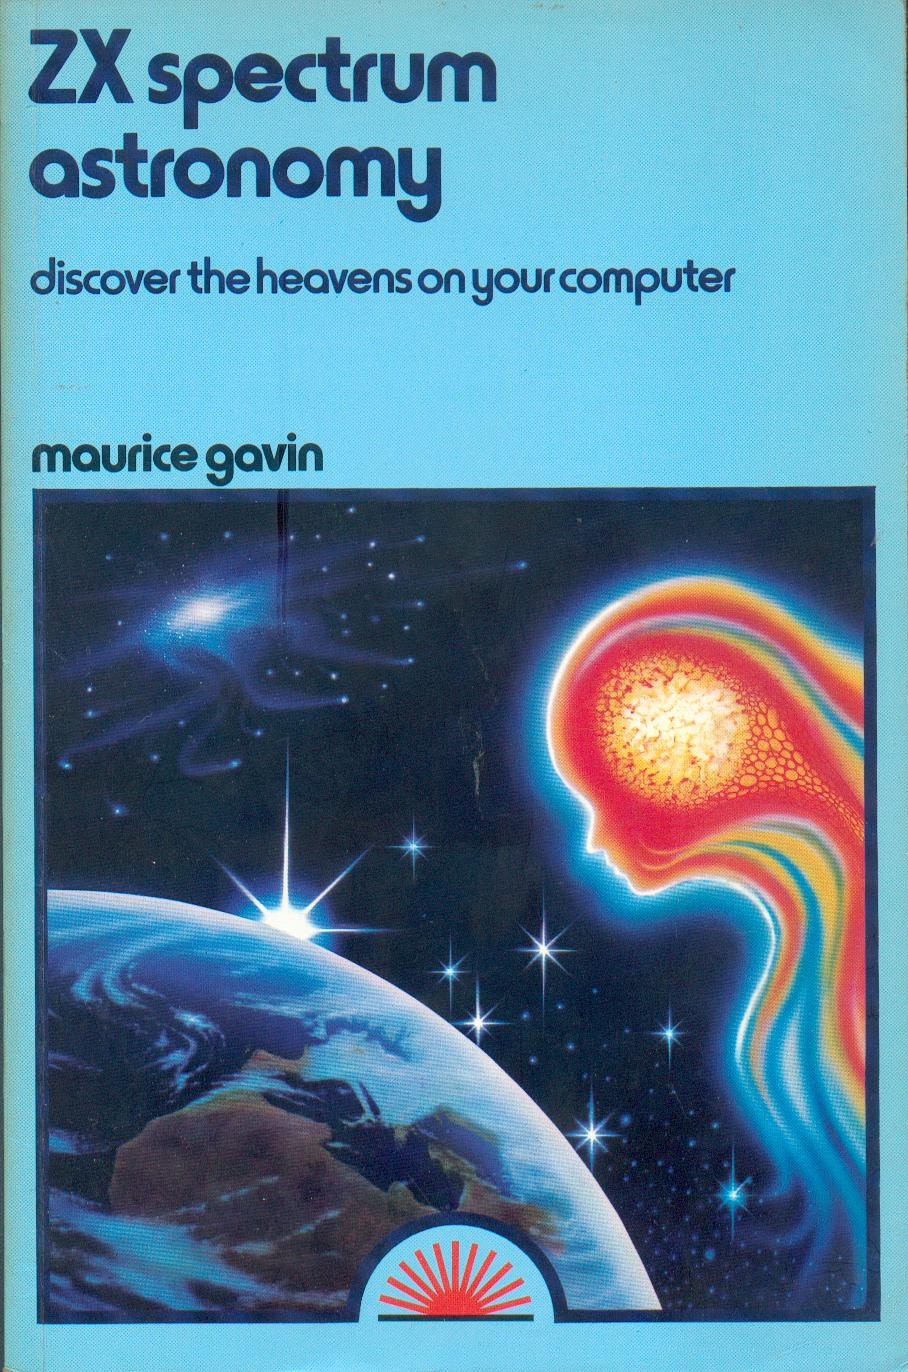 ZX Spectrum Astronomy: Discover the Heavens on Your Computer image, screenshot or loading screen